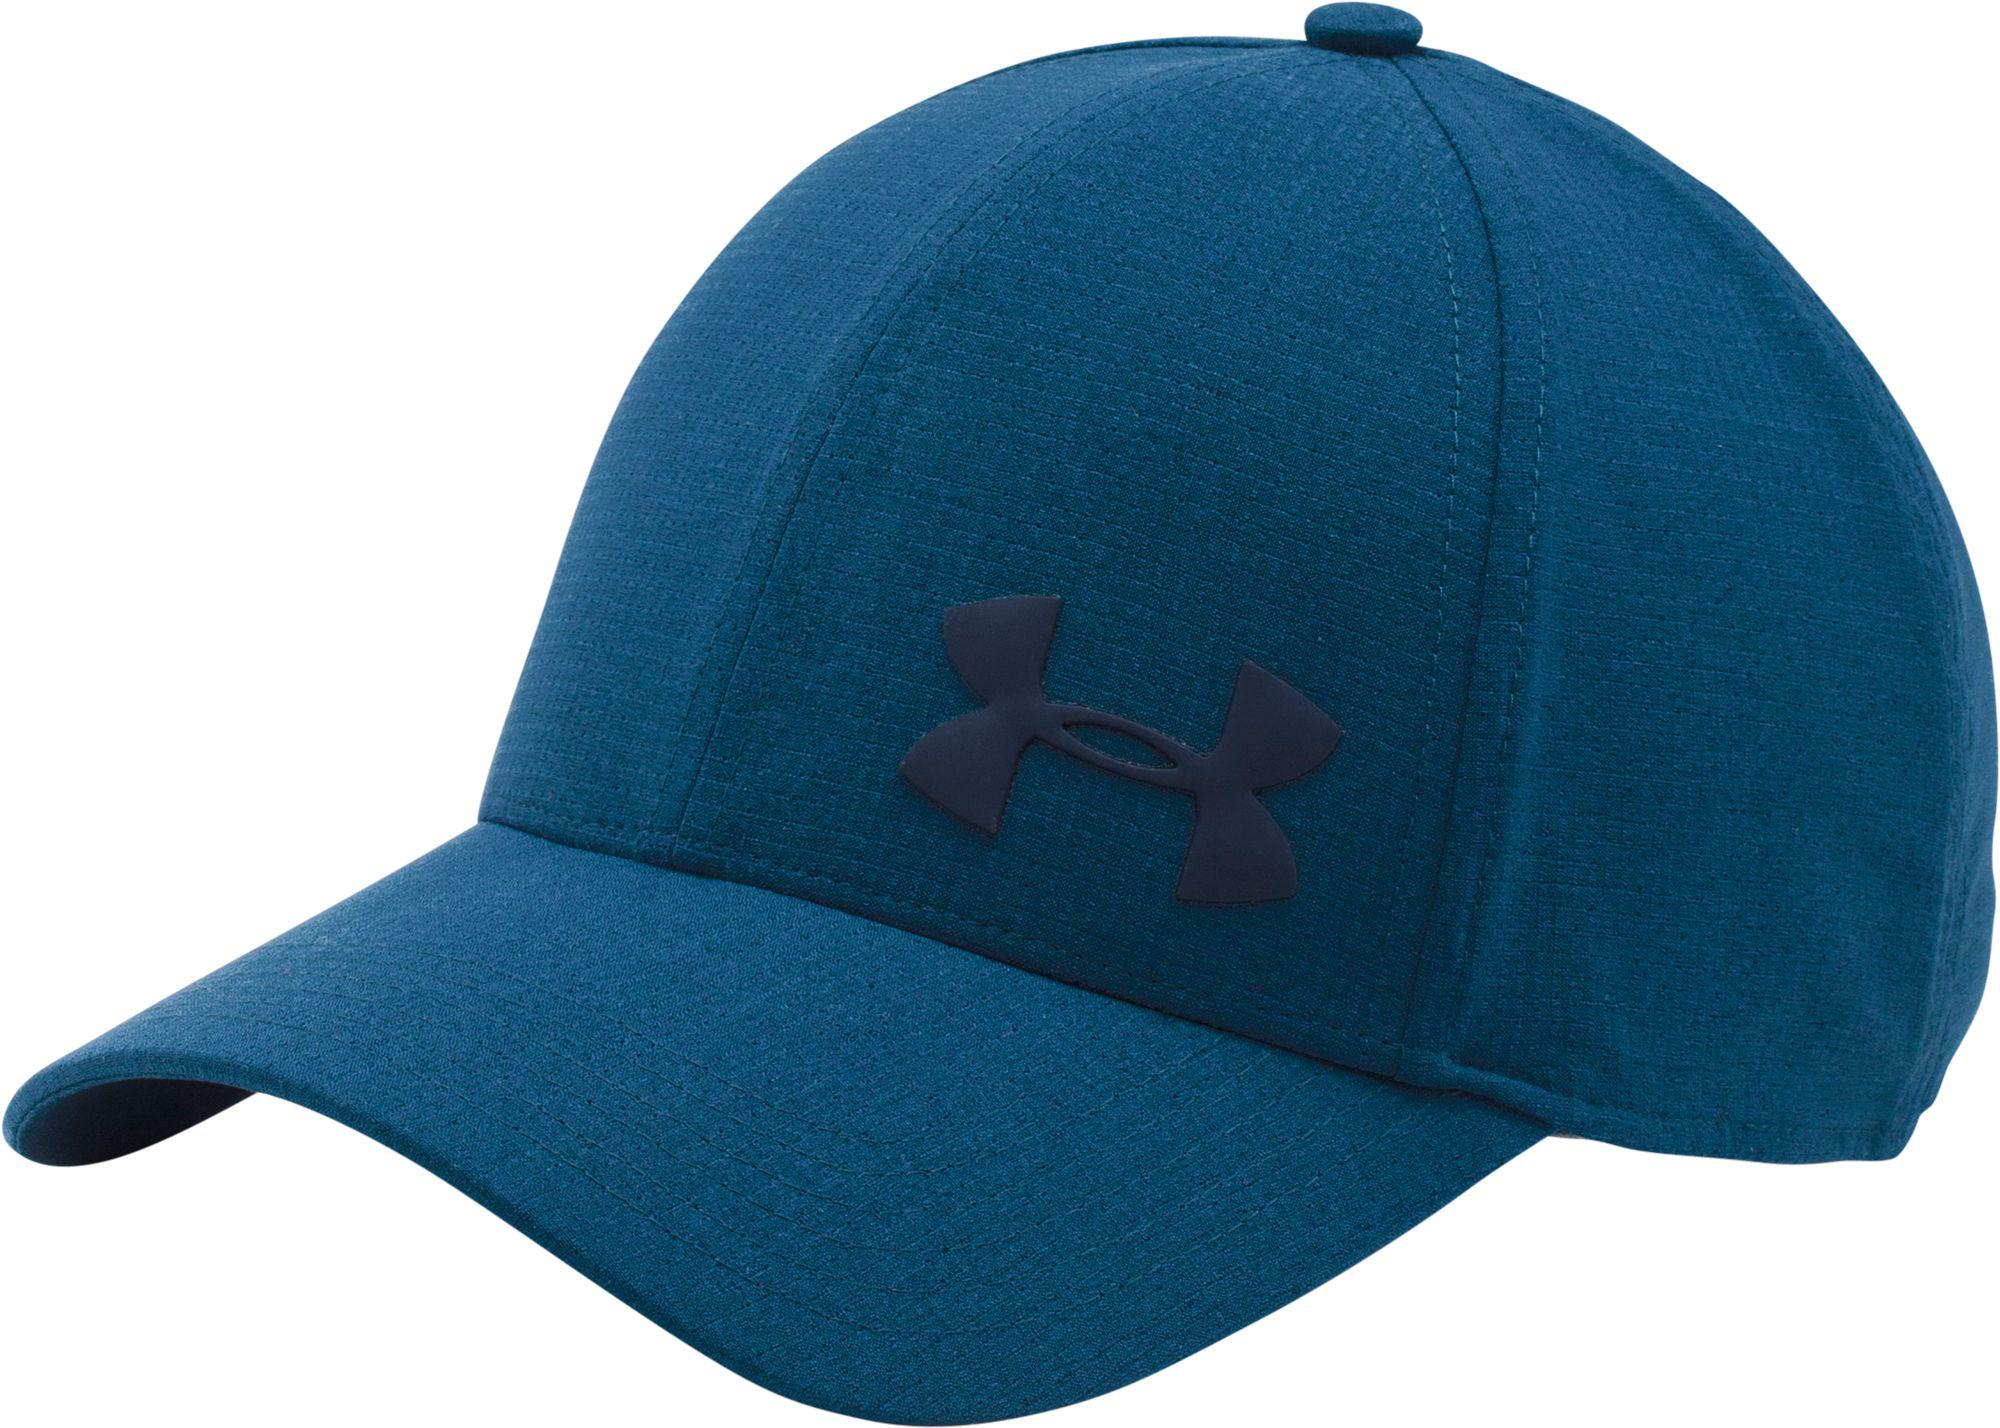 2a4cba057b10e Lyst - Under Armour Airvent Core Hat in Blue for Men